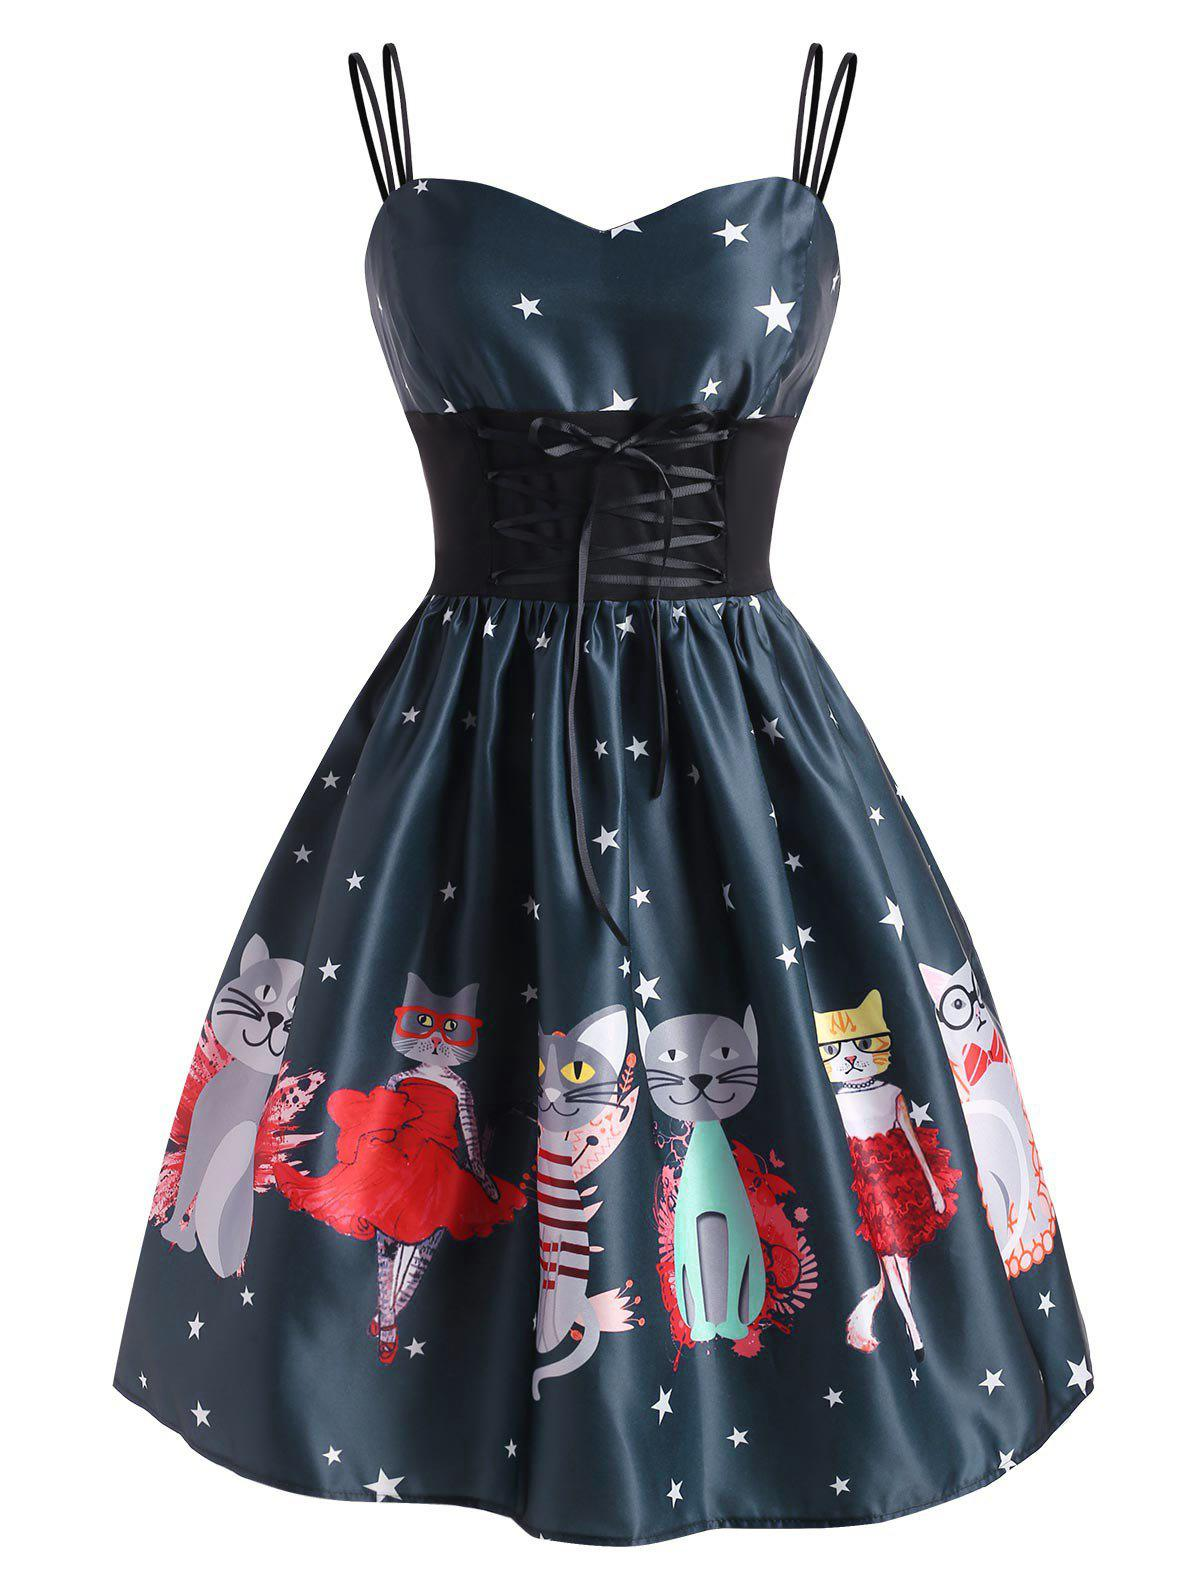 Dual Strap Lace-up Funny Cat Stars Flared Dress - multicolor L